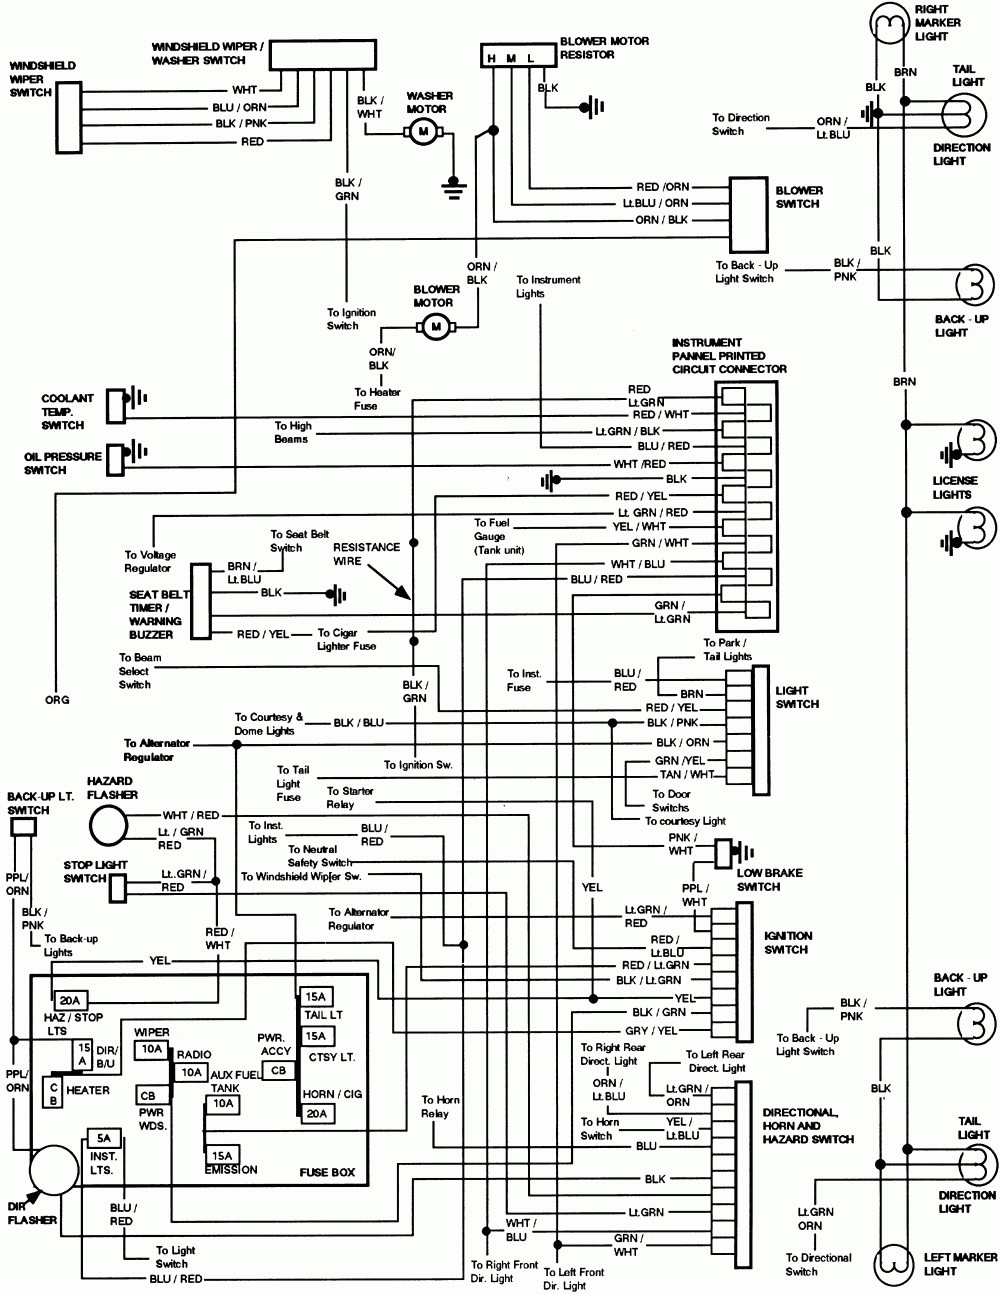 1994 ford e350 wiring diagram electrical wiring diagram guide 1951 Ford Wiring Harness